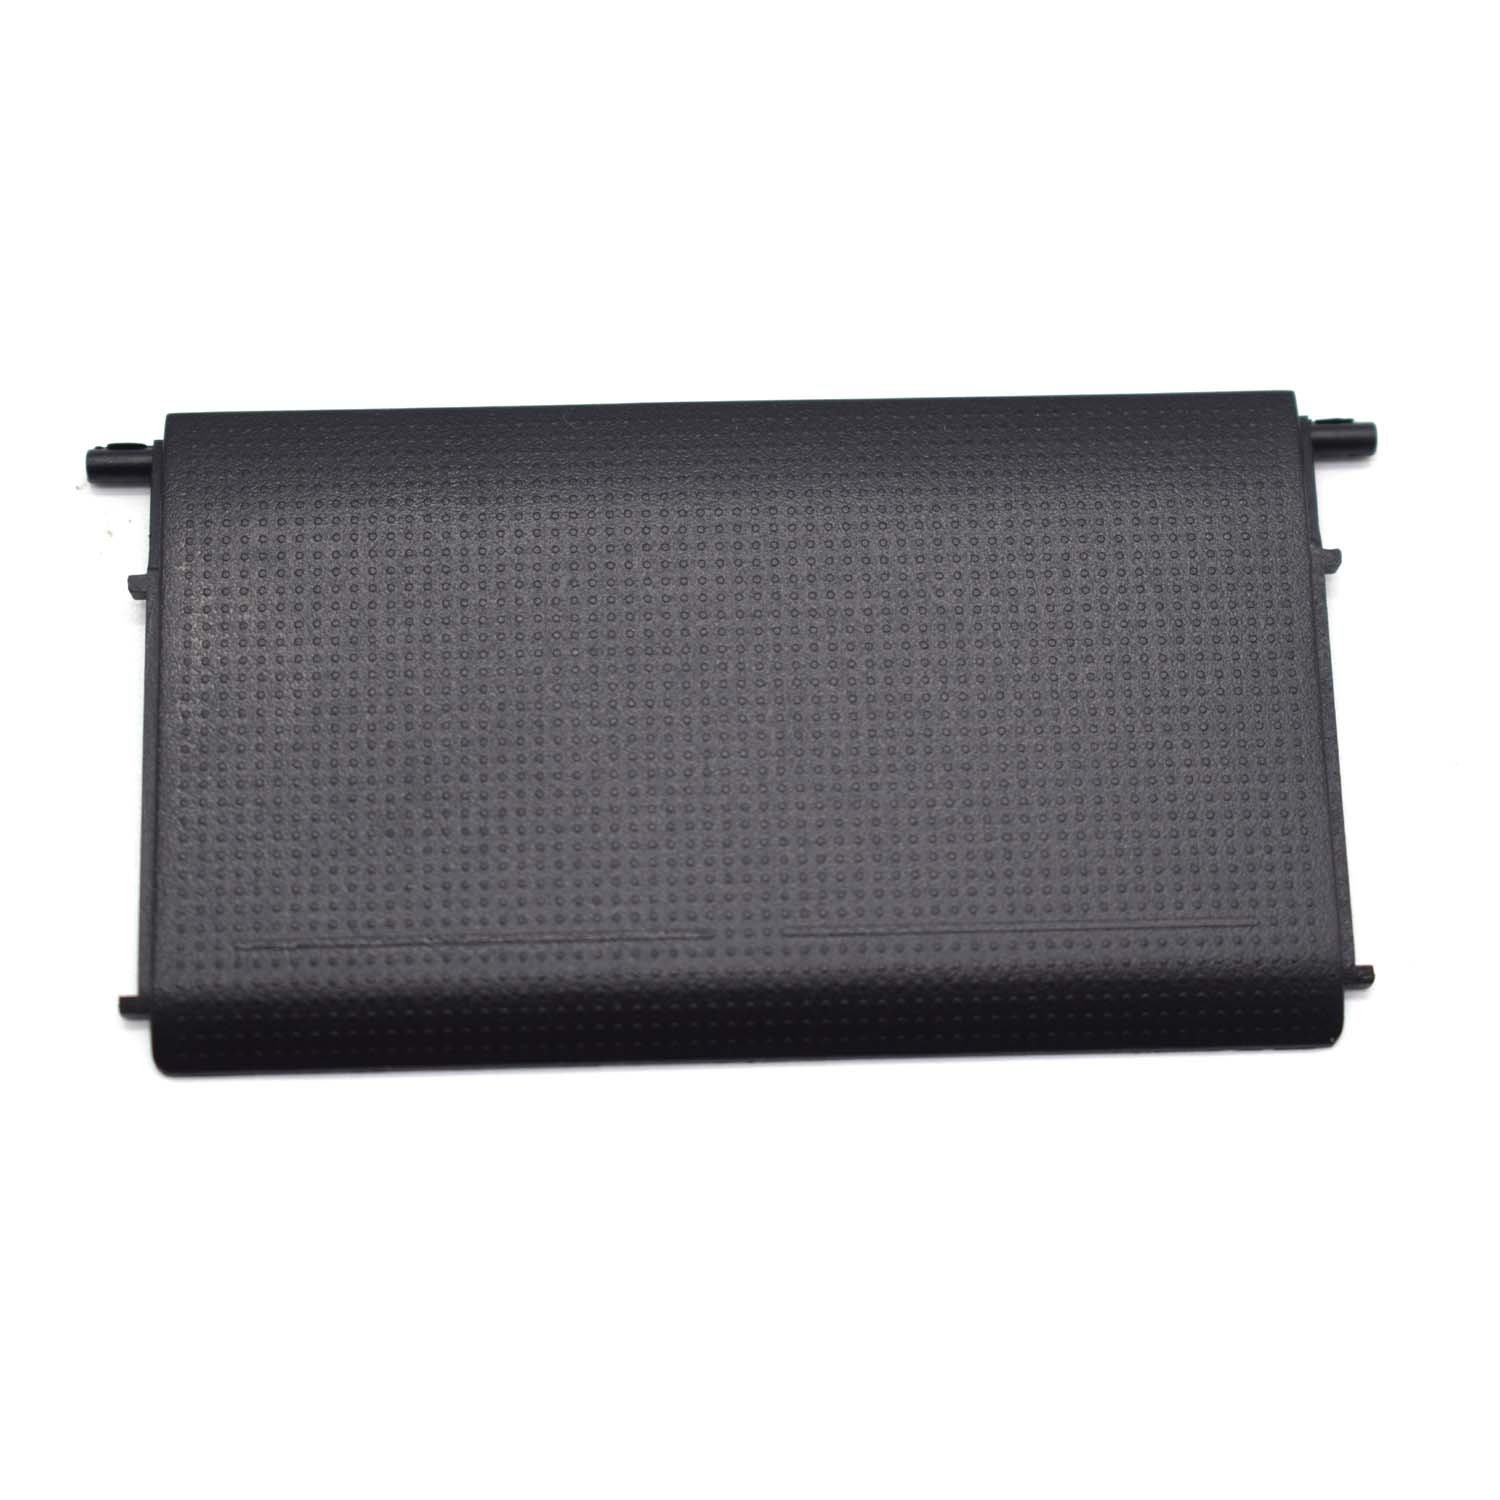 Amazon New Palmrest Touchpad Cover For Lenovo Thinkpad X220 X220i With Fingerprint hole puters & Accessories